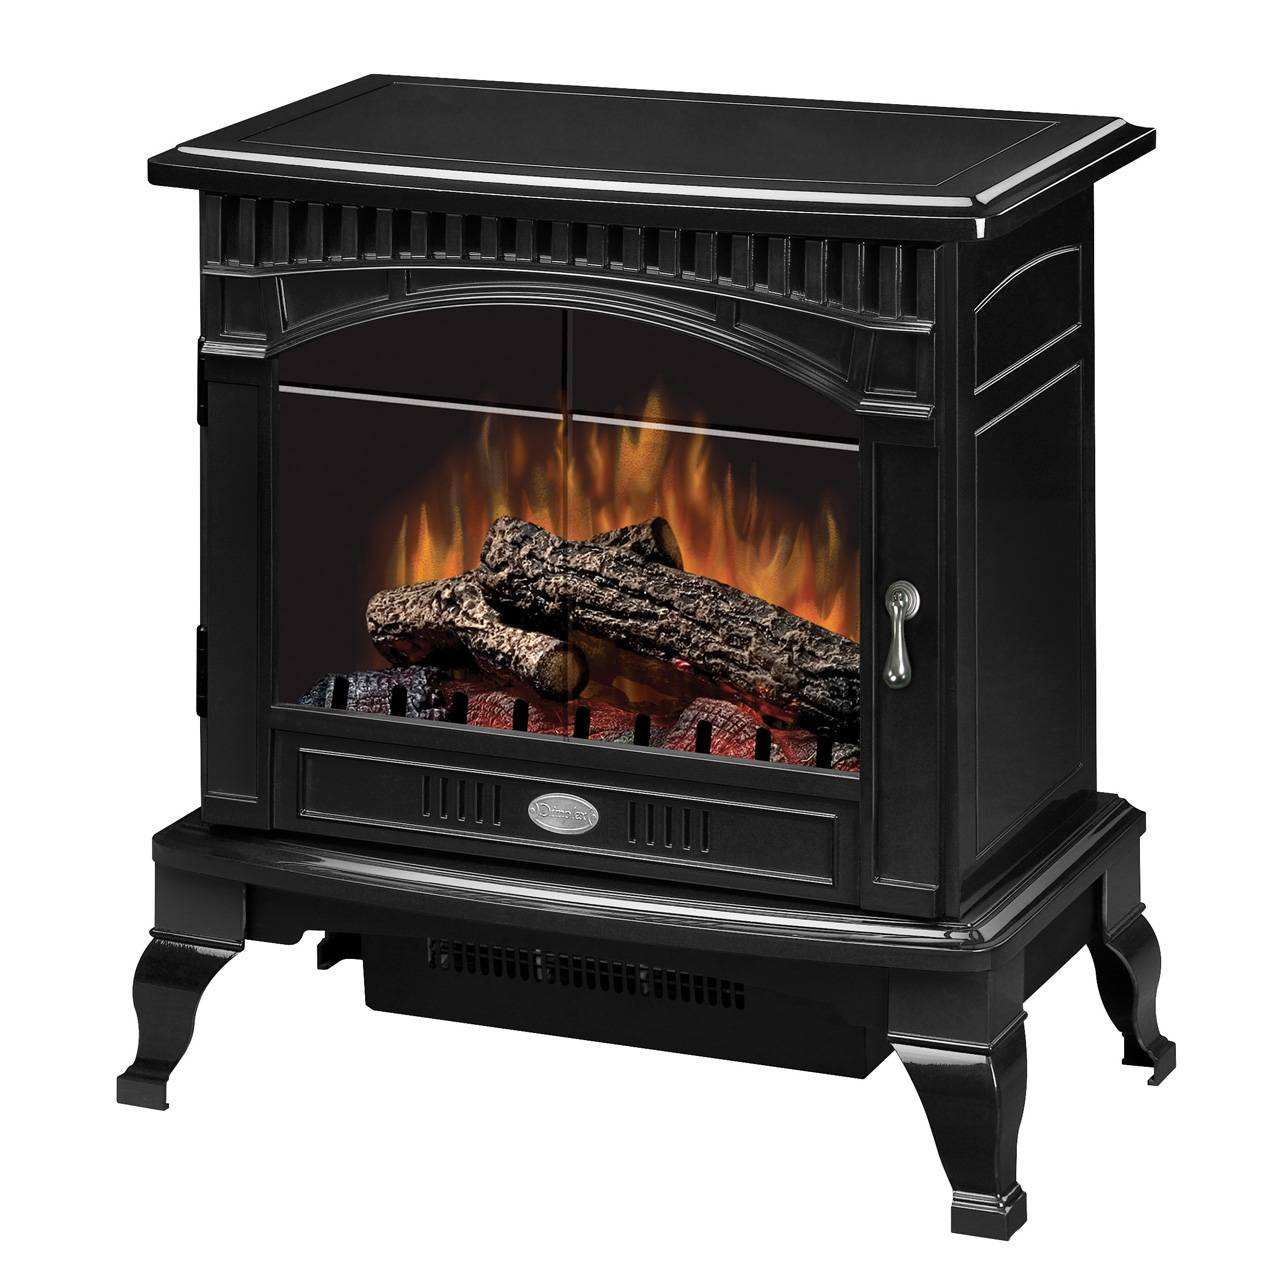 dimplex stoves inspirational dimplex electric fireplaces stoves products of dimplex stoves